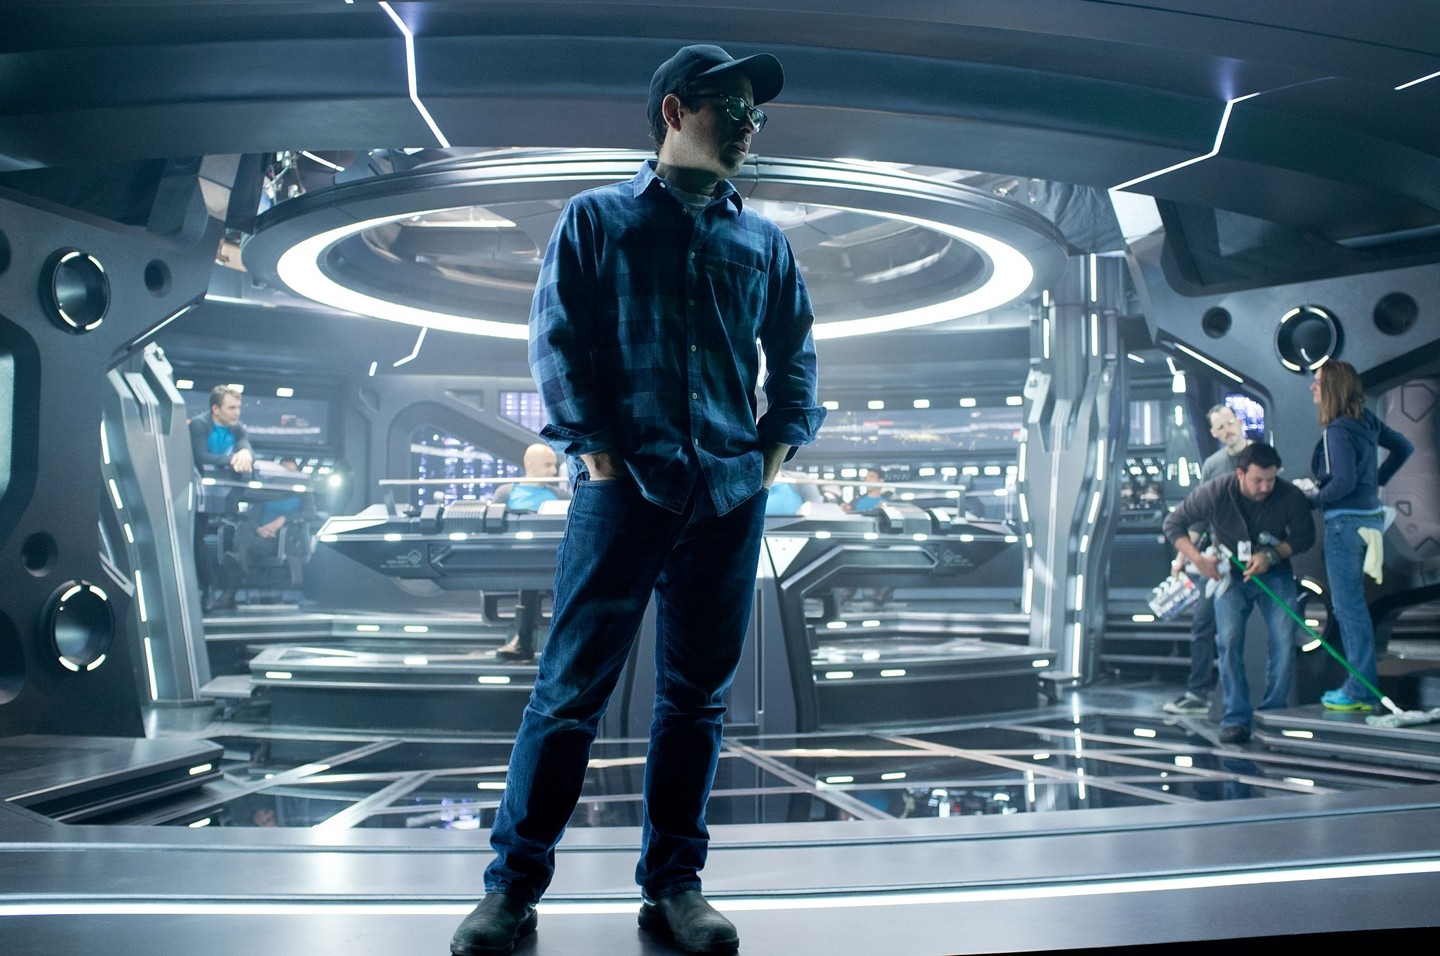 J.J Abrams on the bridge of the Enterprise